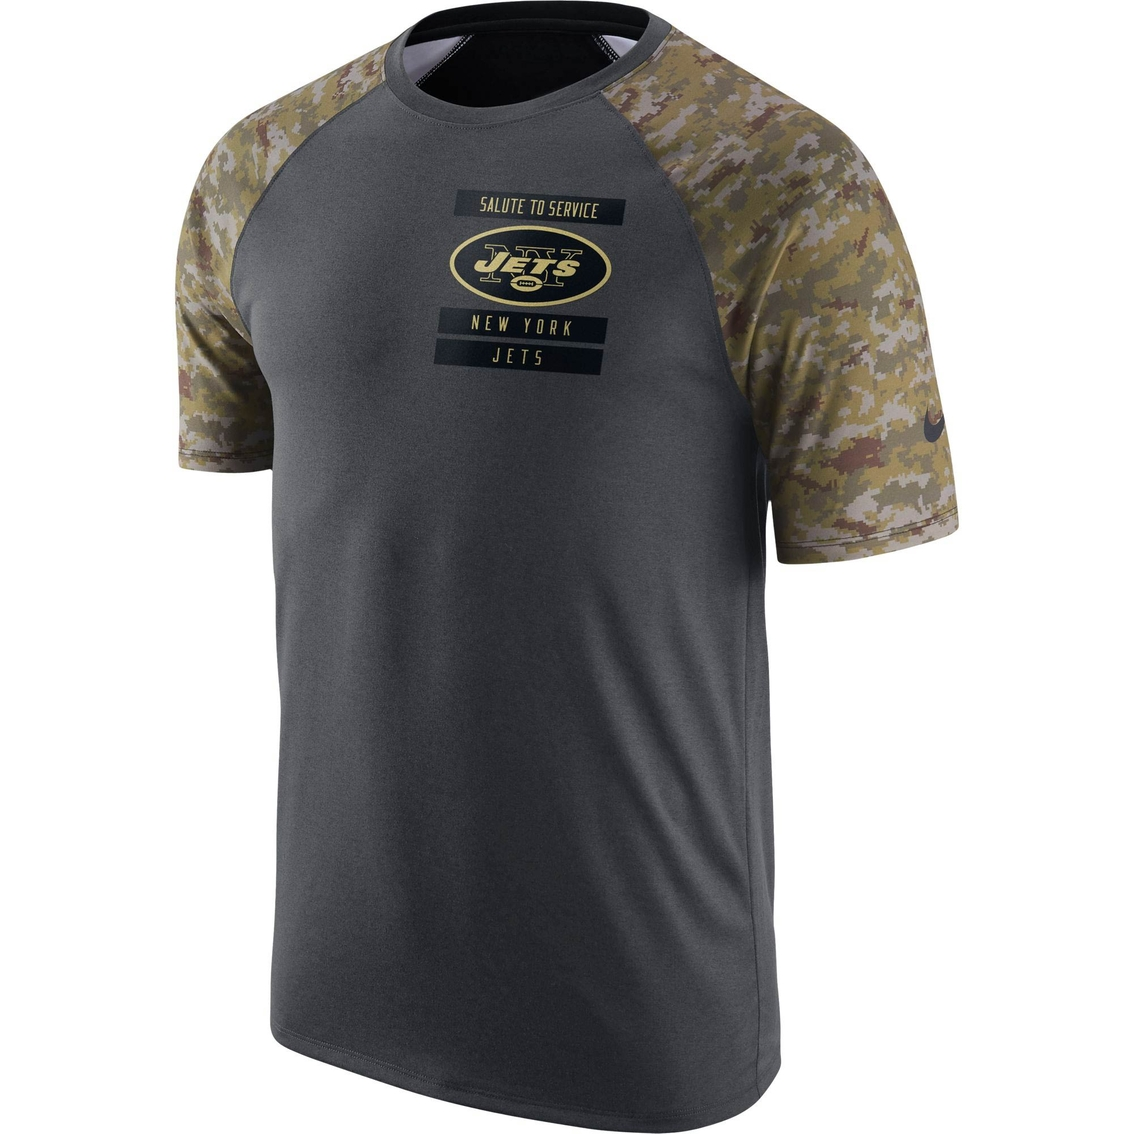 brand new d542d d7467 Nike Nfl New York Jets Men's Salute To Service Tee | Hoodies ...